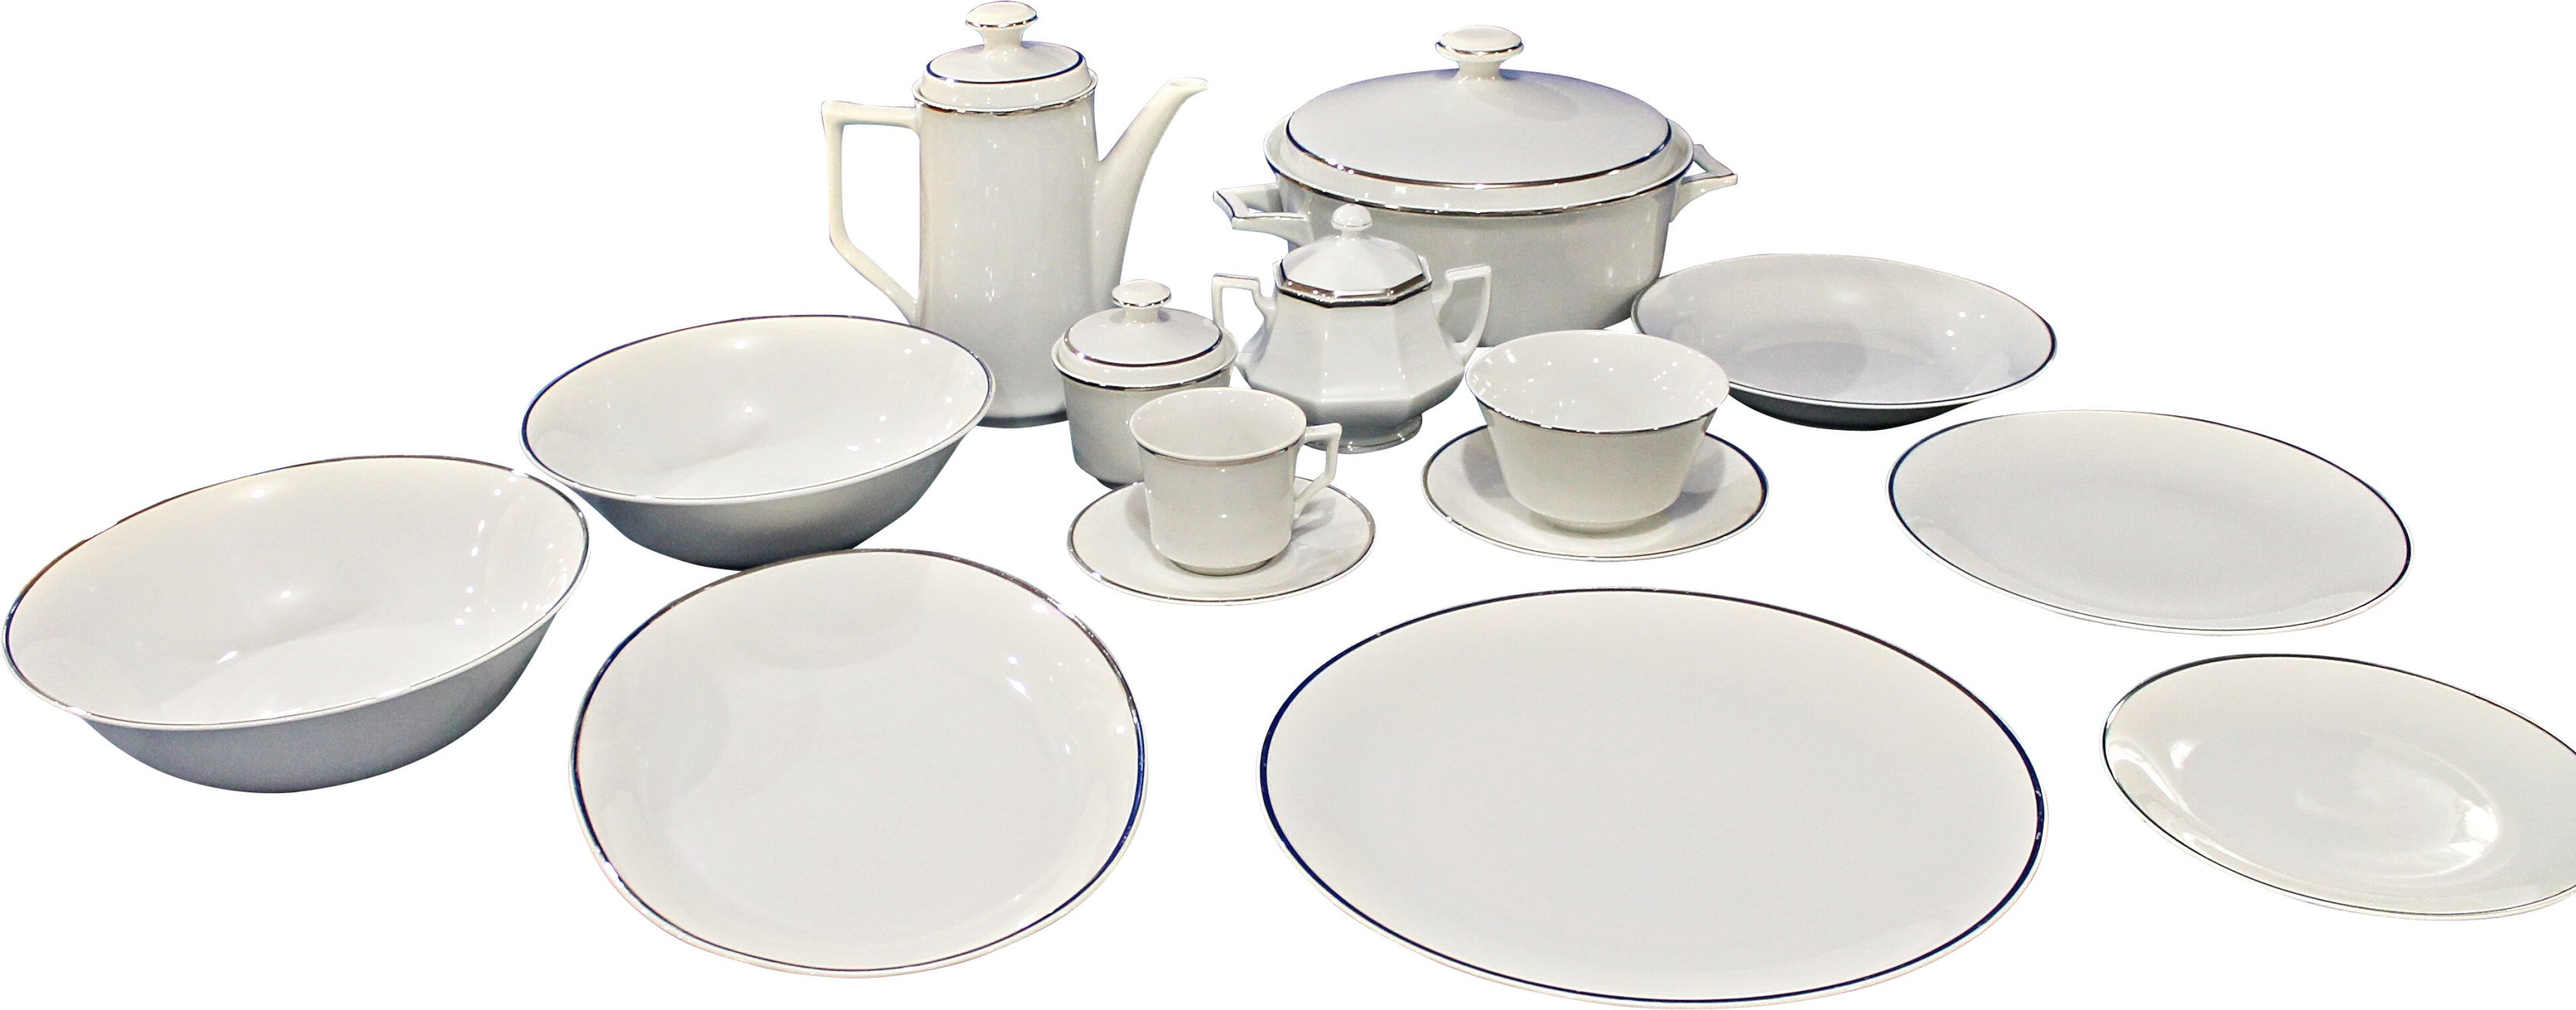 Dinnerware Set, Kronester Bavaria, Germany, 1930s